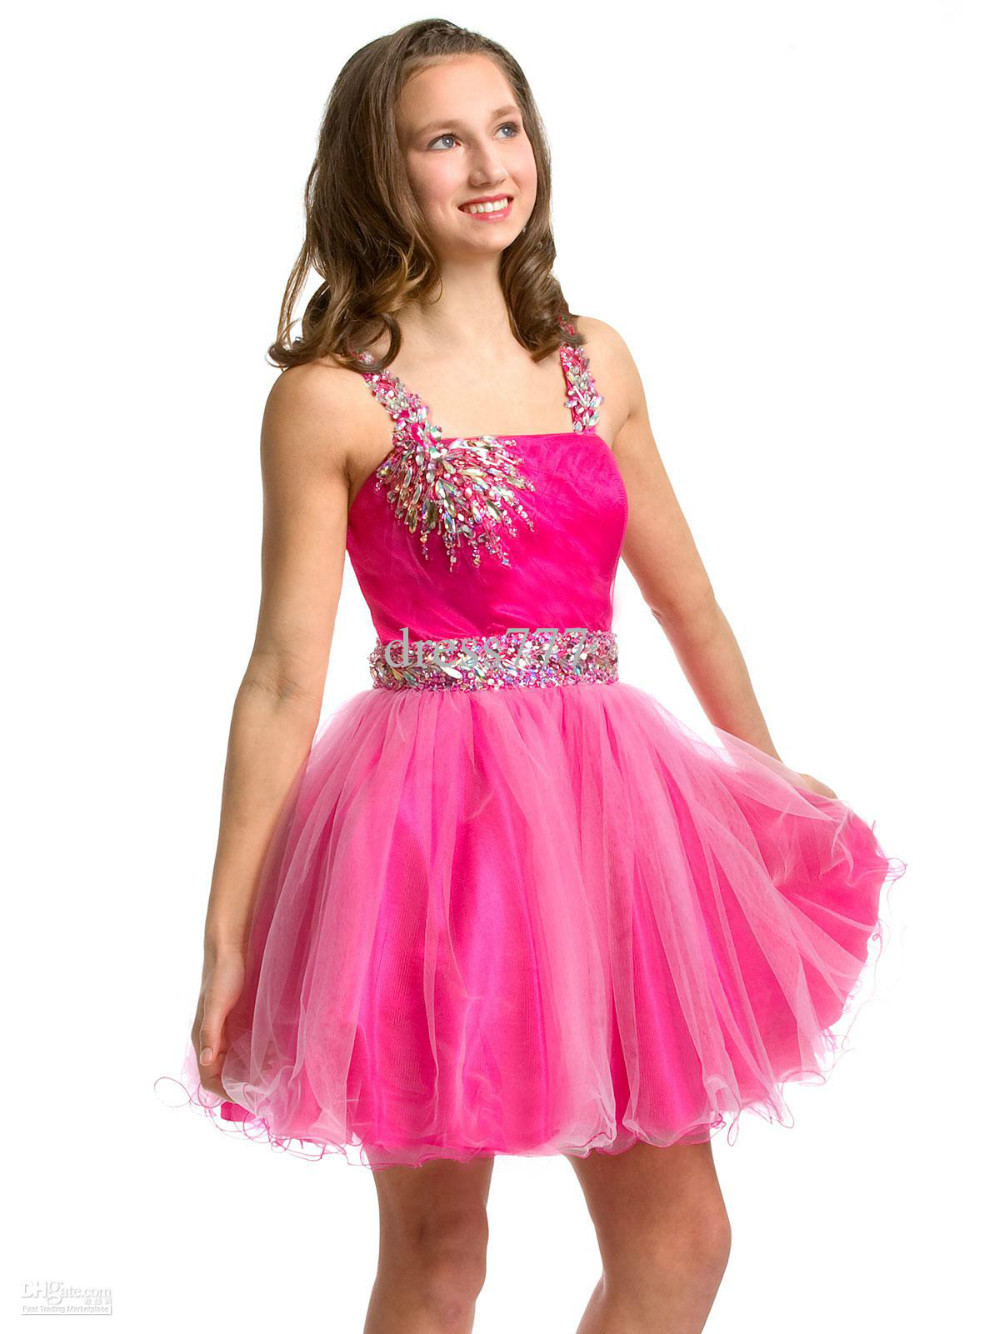 dress - Party pink dresses for juniors video